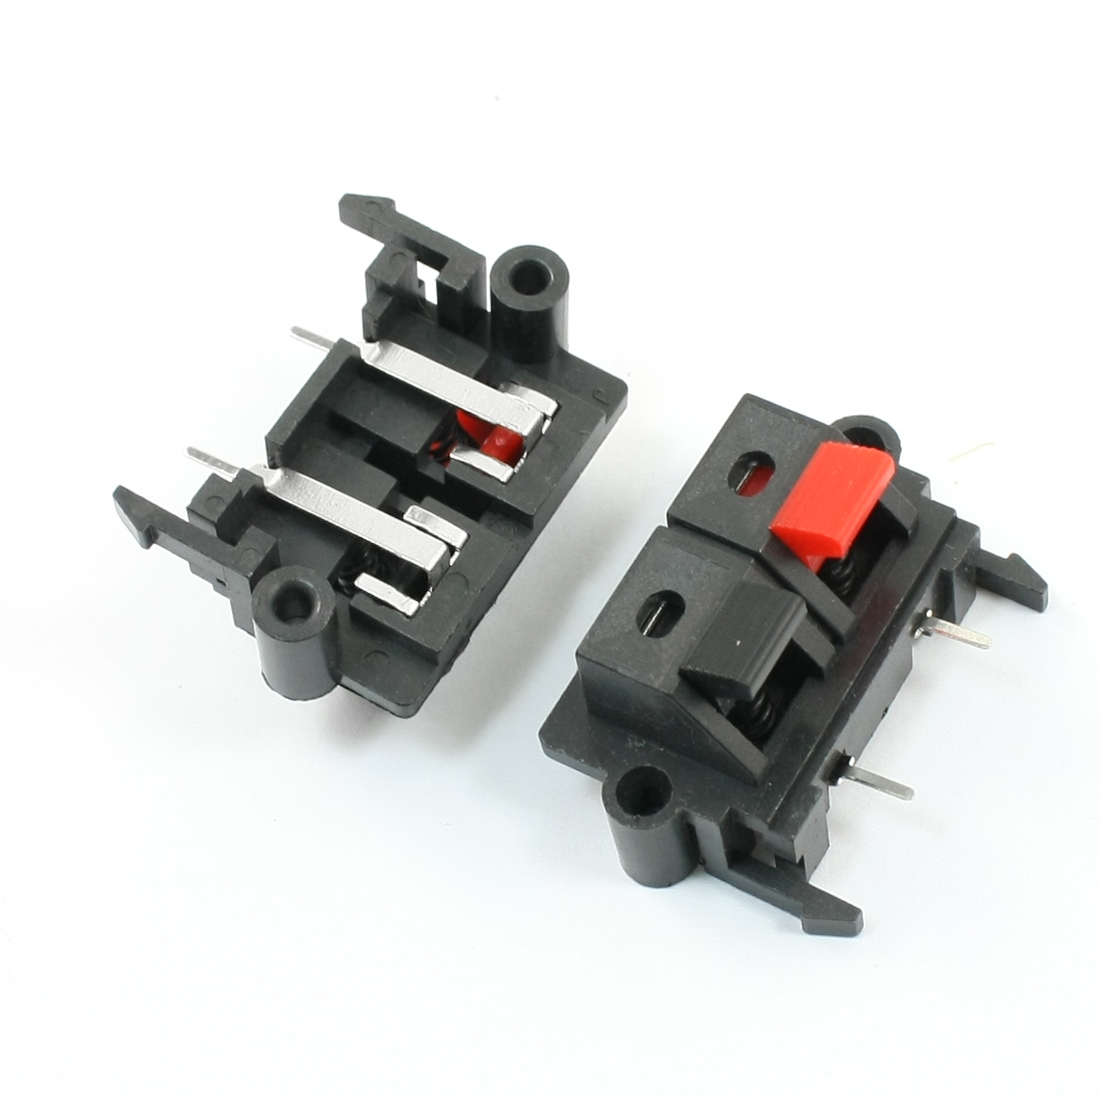 2 x Single Row Push Type Jack Speaker Terminals Board Connector 38x26mm